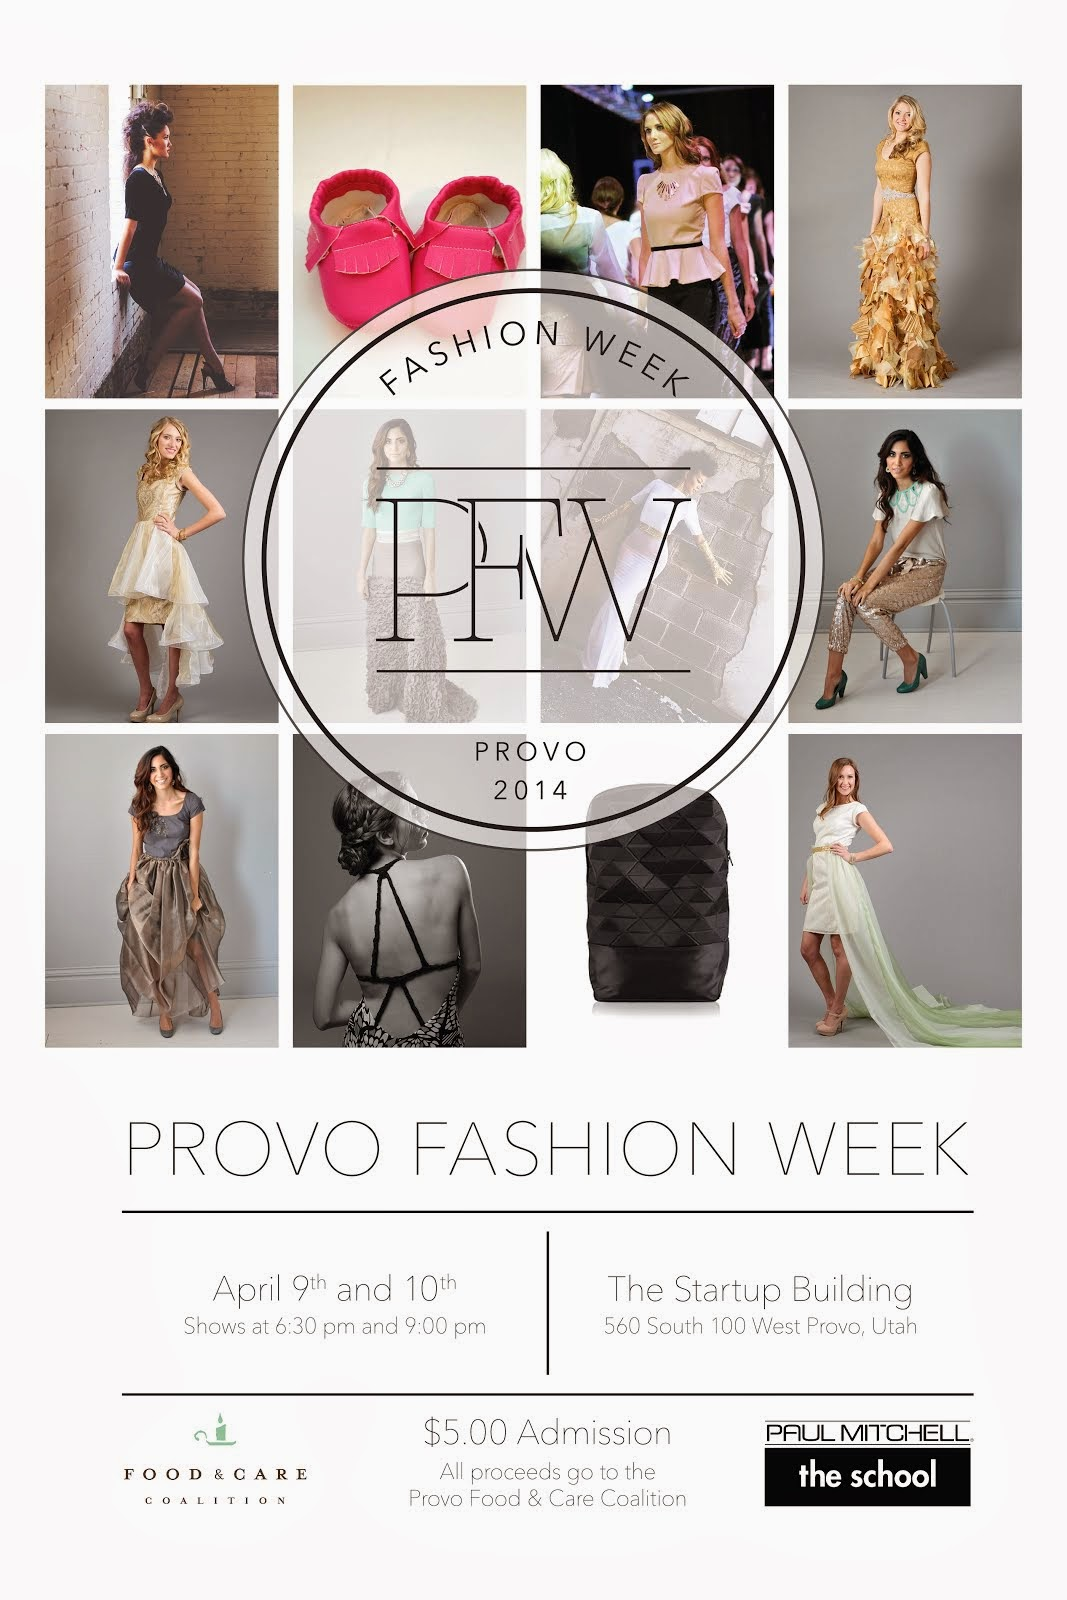 PFW: April 9th - Upcoming Fashion Show!